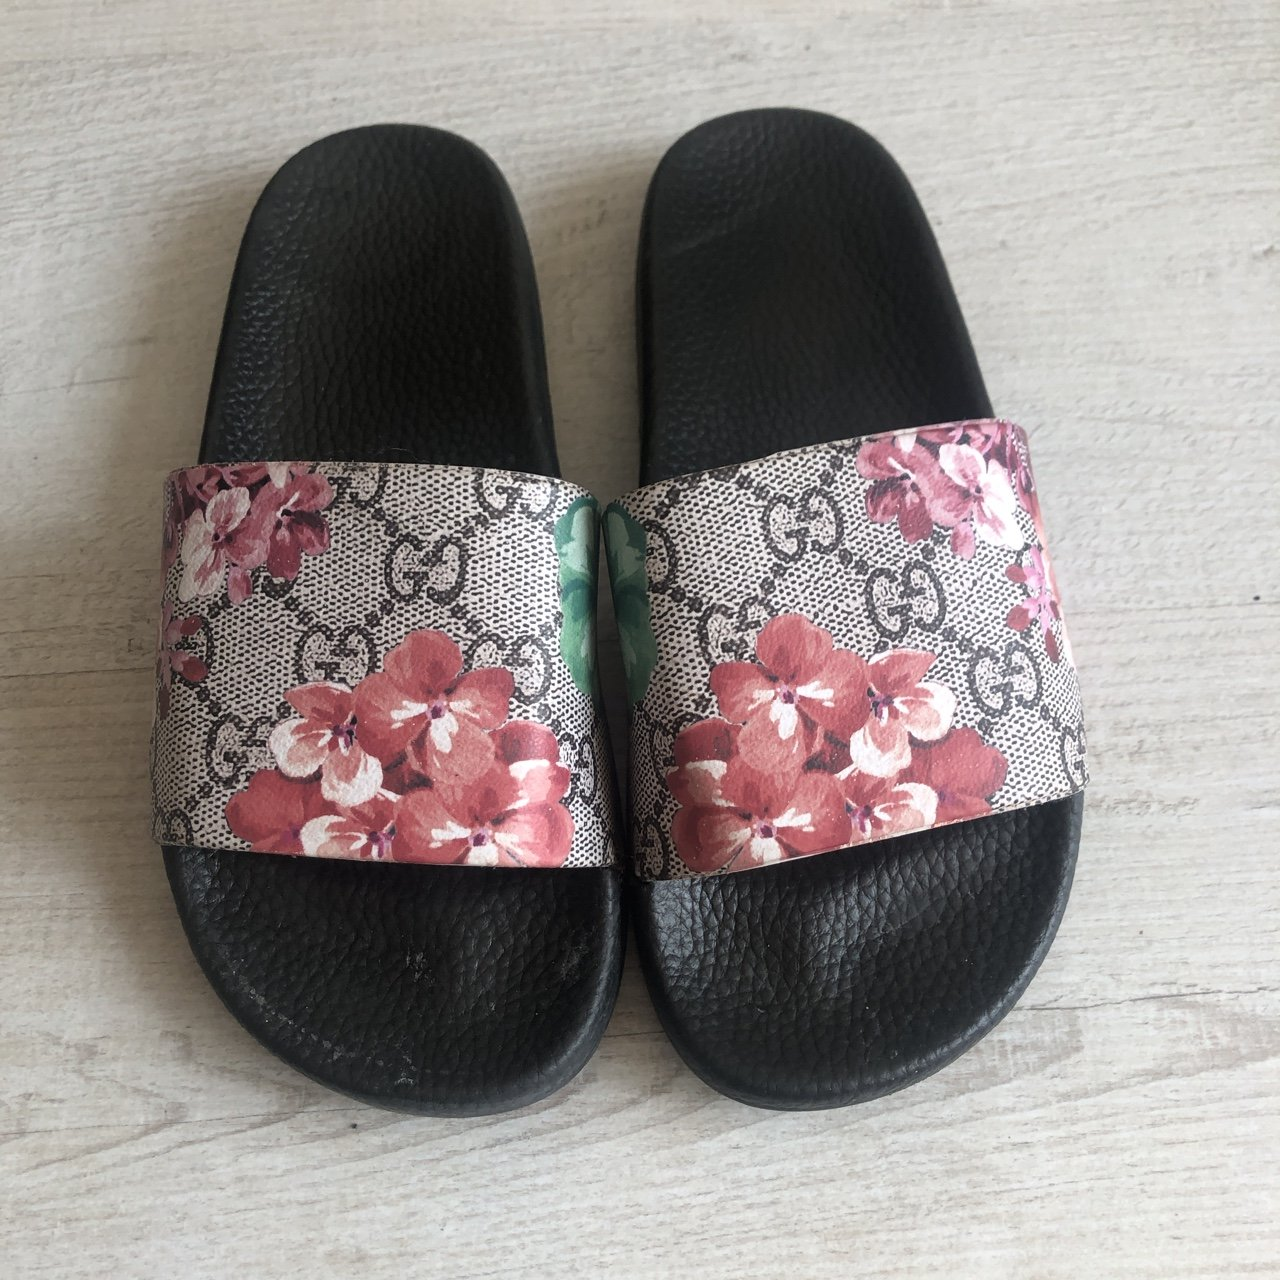 642bccb1d94d Replica Gucci floral sliders Size 4 Perfect condition as - Depop